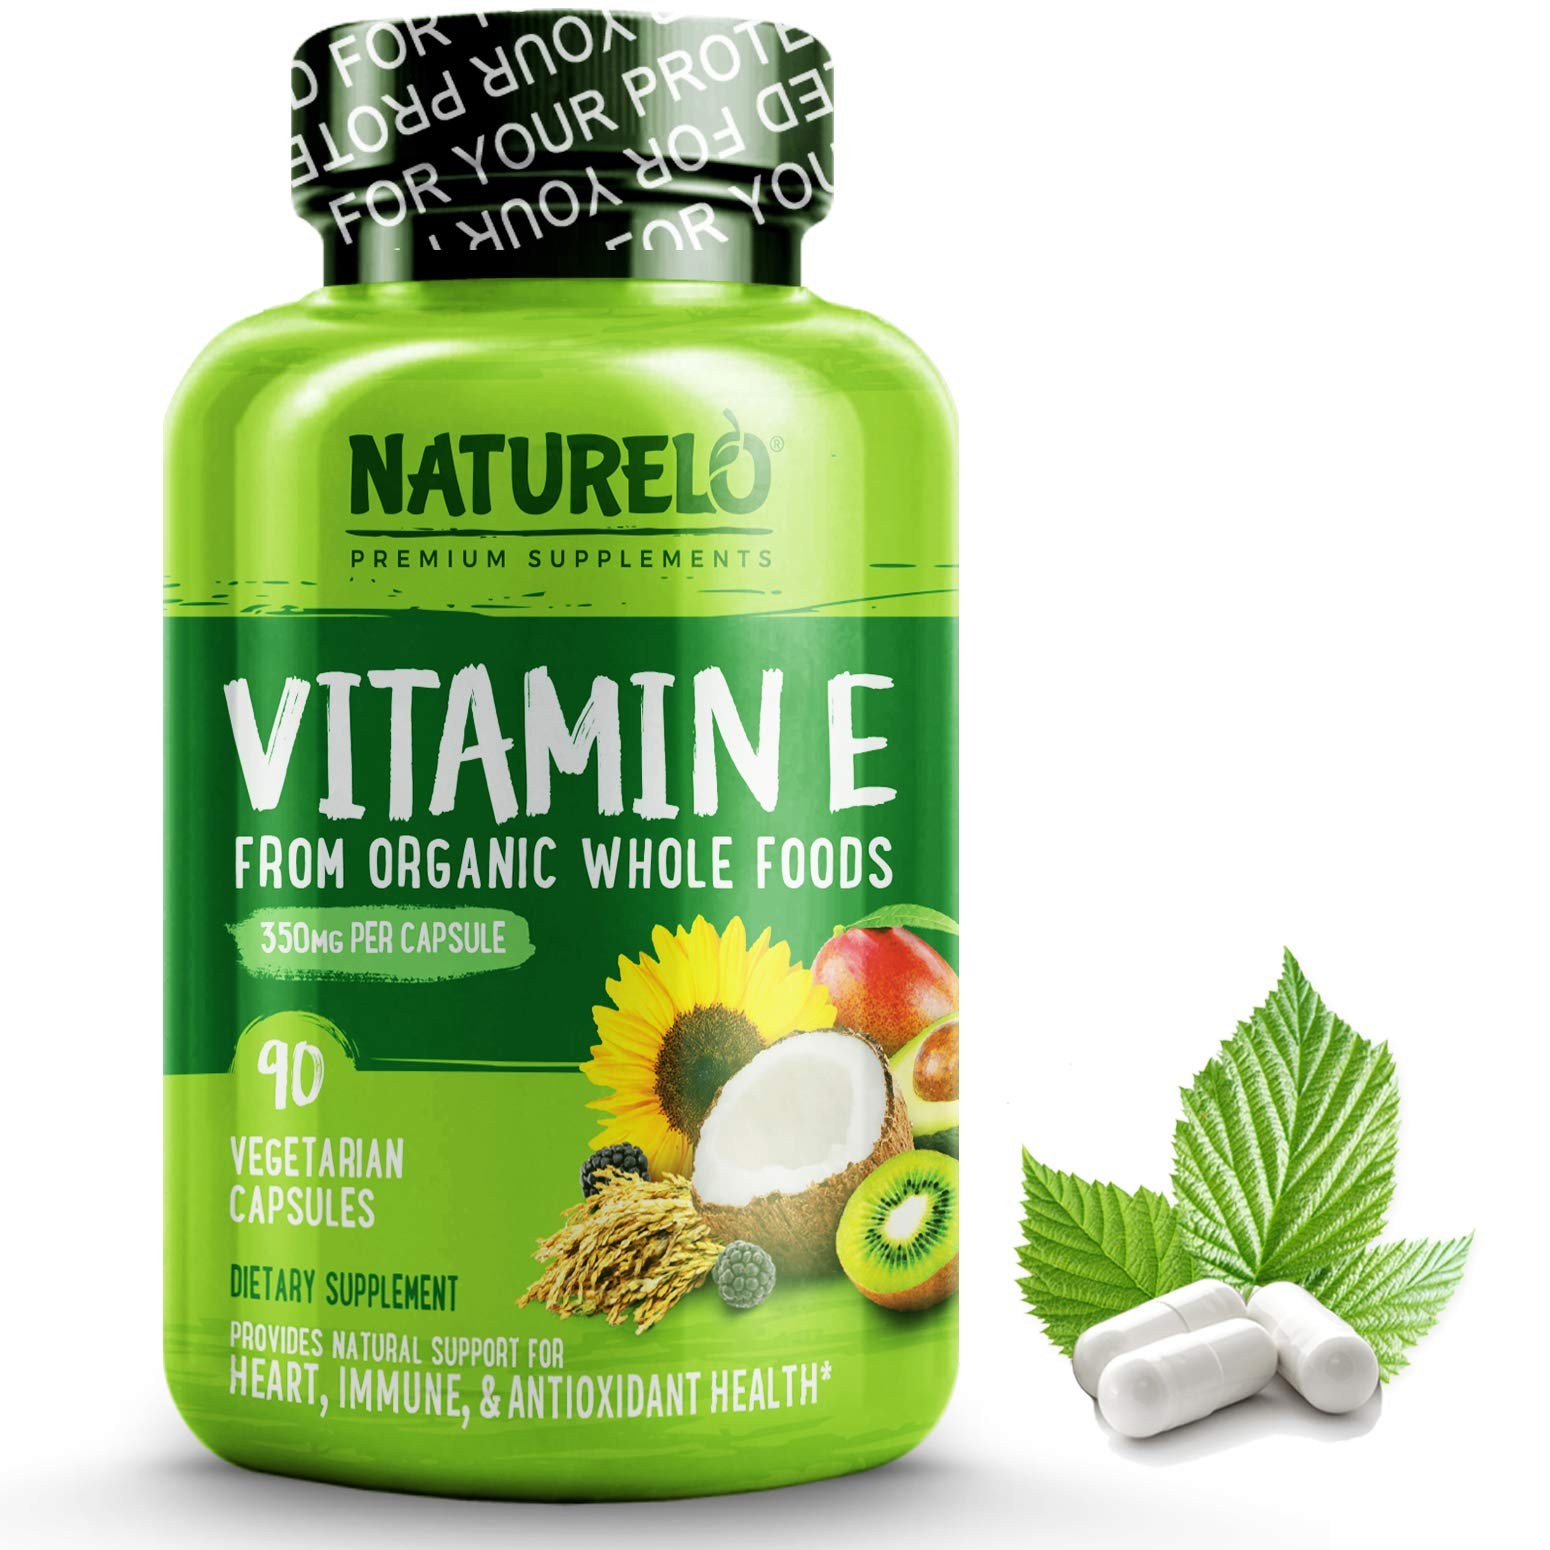 NATURELO Vitamin E - 350 mg (522 IU) of Natural Mixed Tocopherols from Organic Whole Foods - Best Supplement for Healthy Skin, Hair, Nails, Immunity, Eye Health - Non-GMO, Soy free - 90 Vegan Capsules by NATURELO